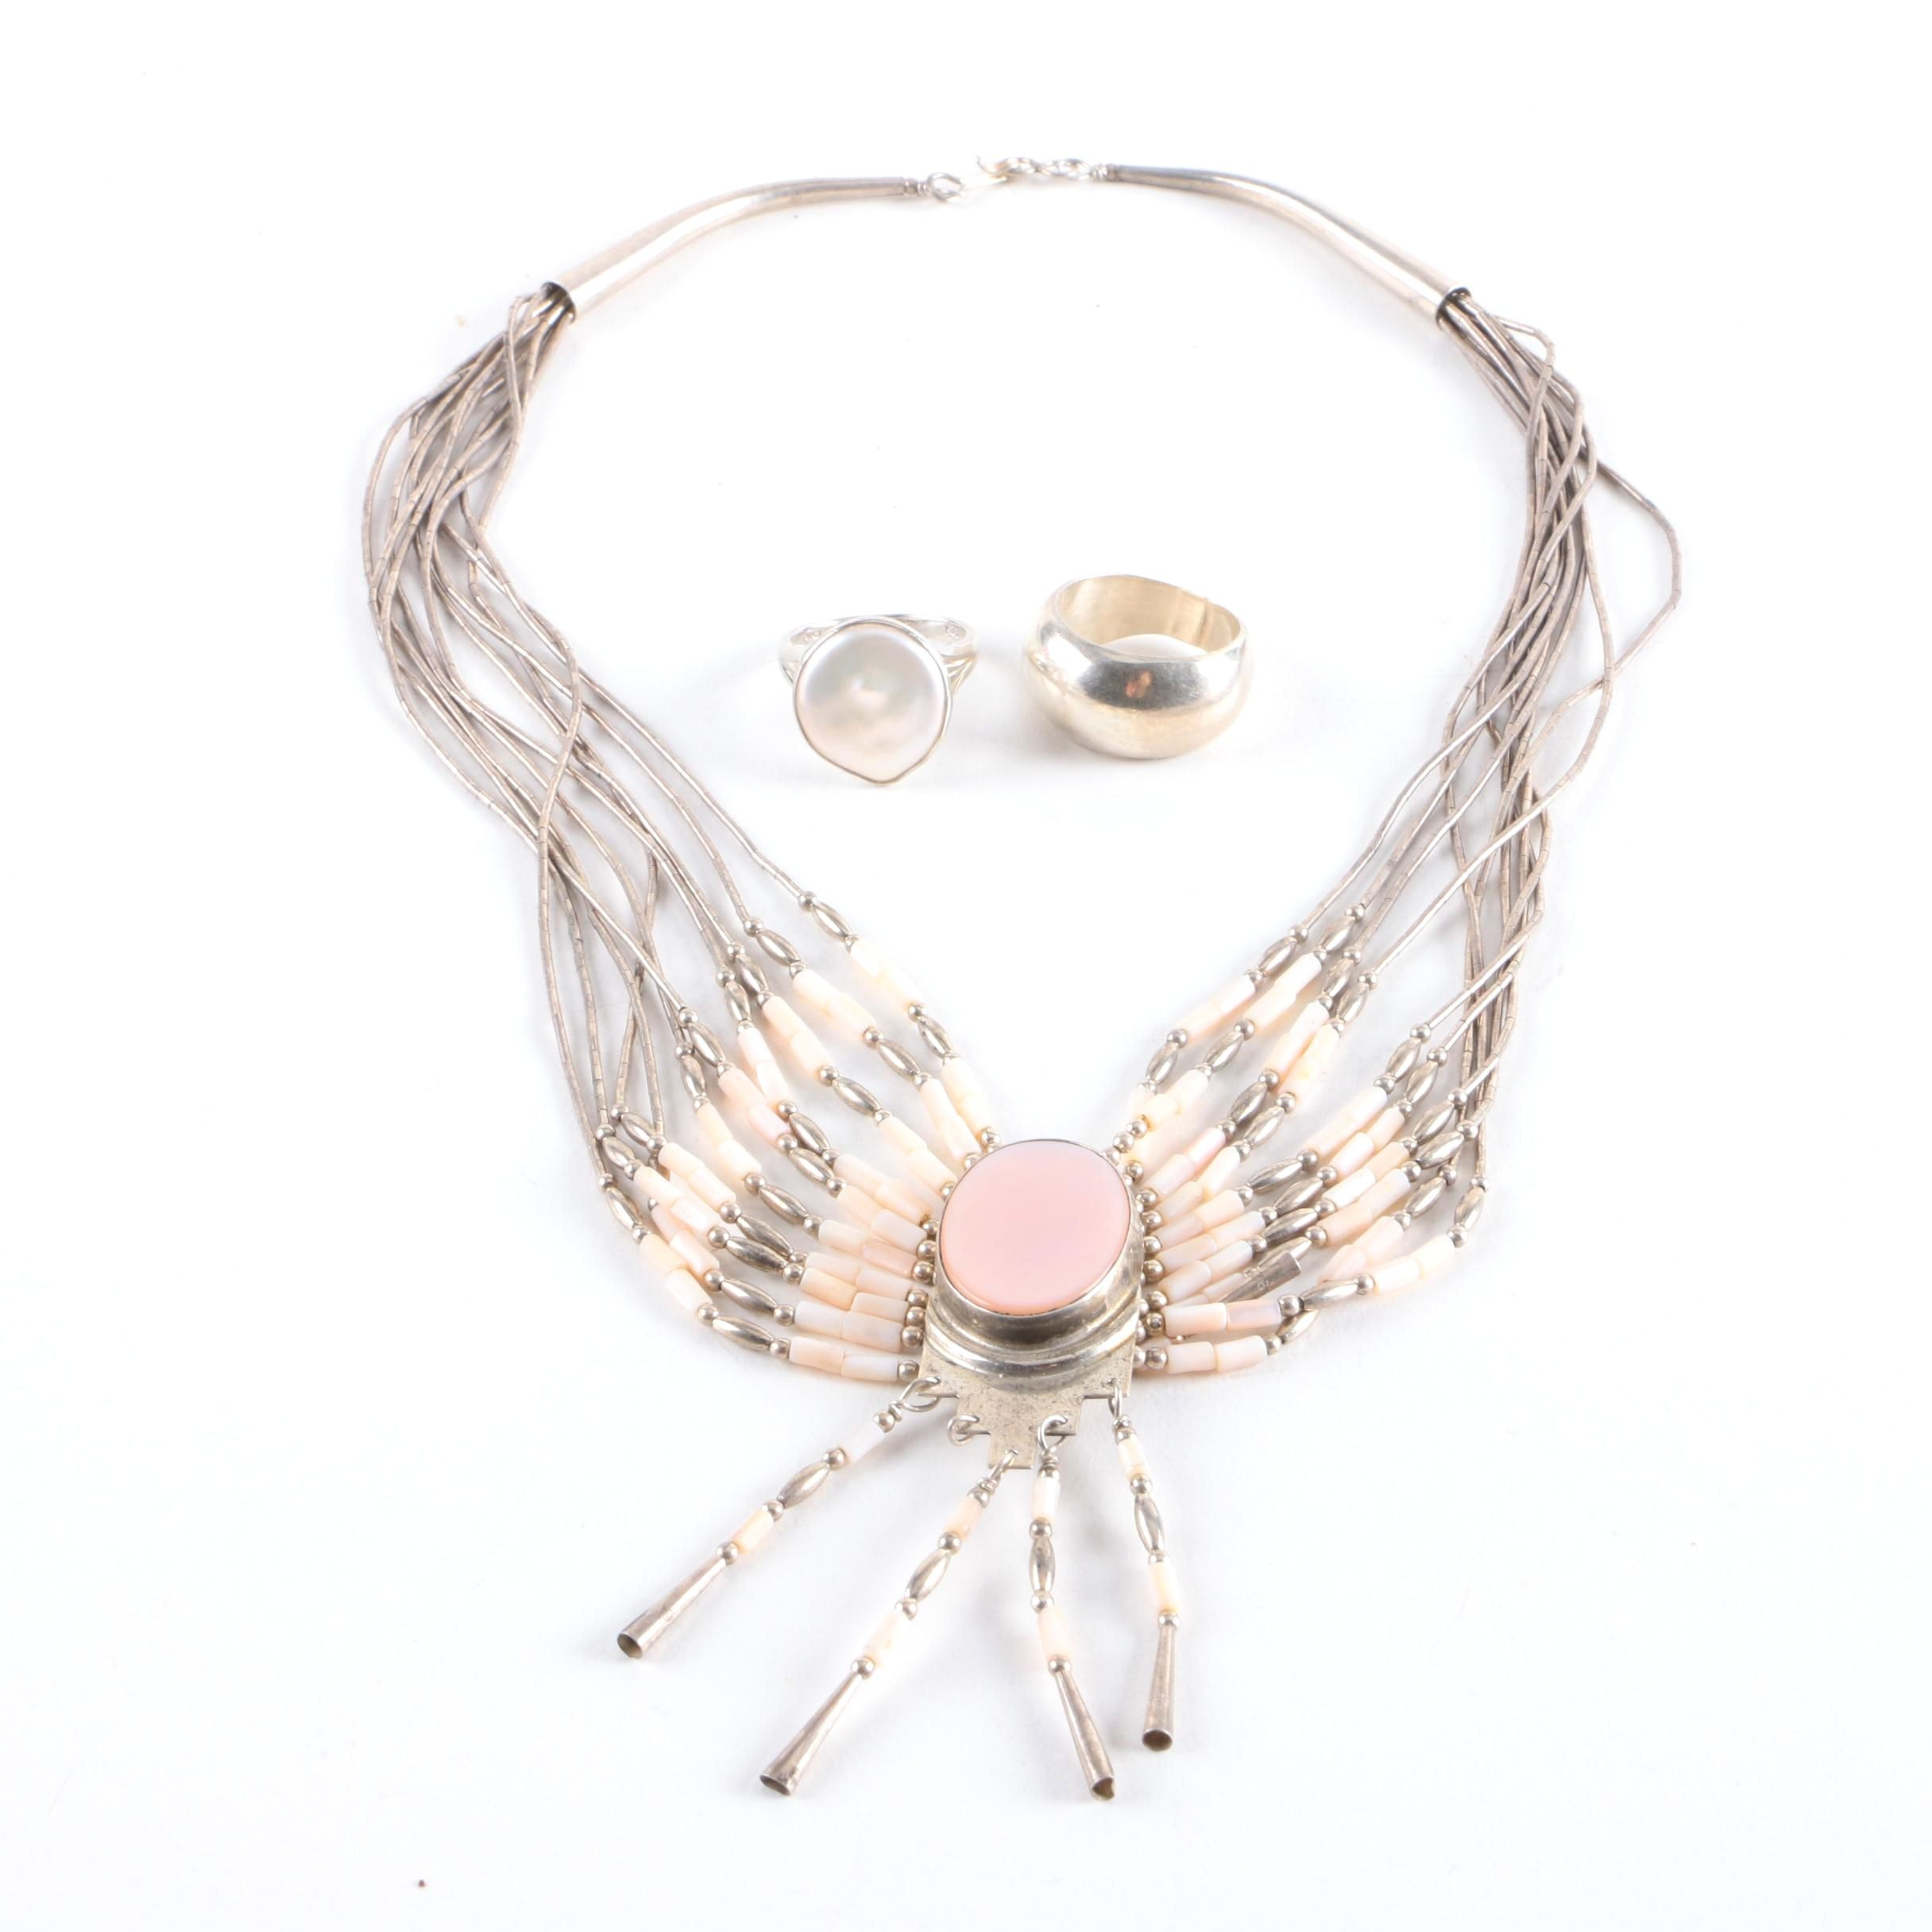 Sterling Silver Rings and Shell Necklace Including Cultured Pearls